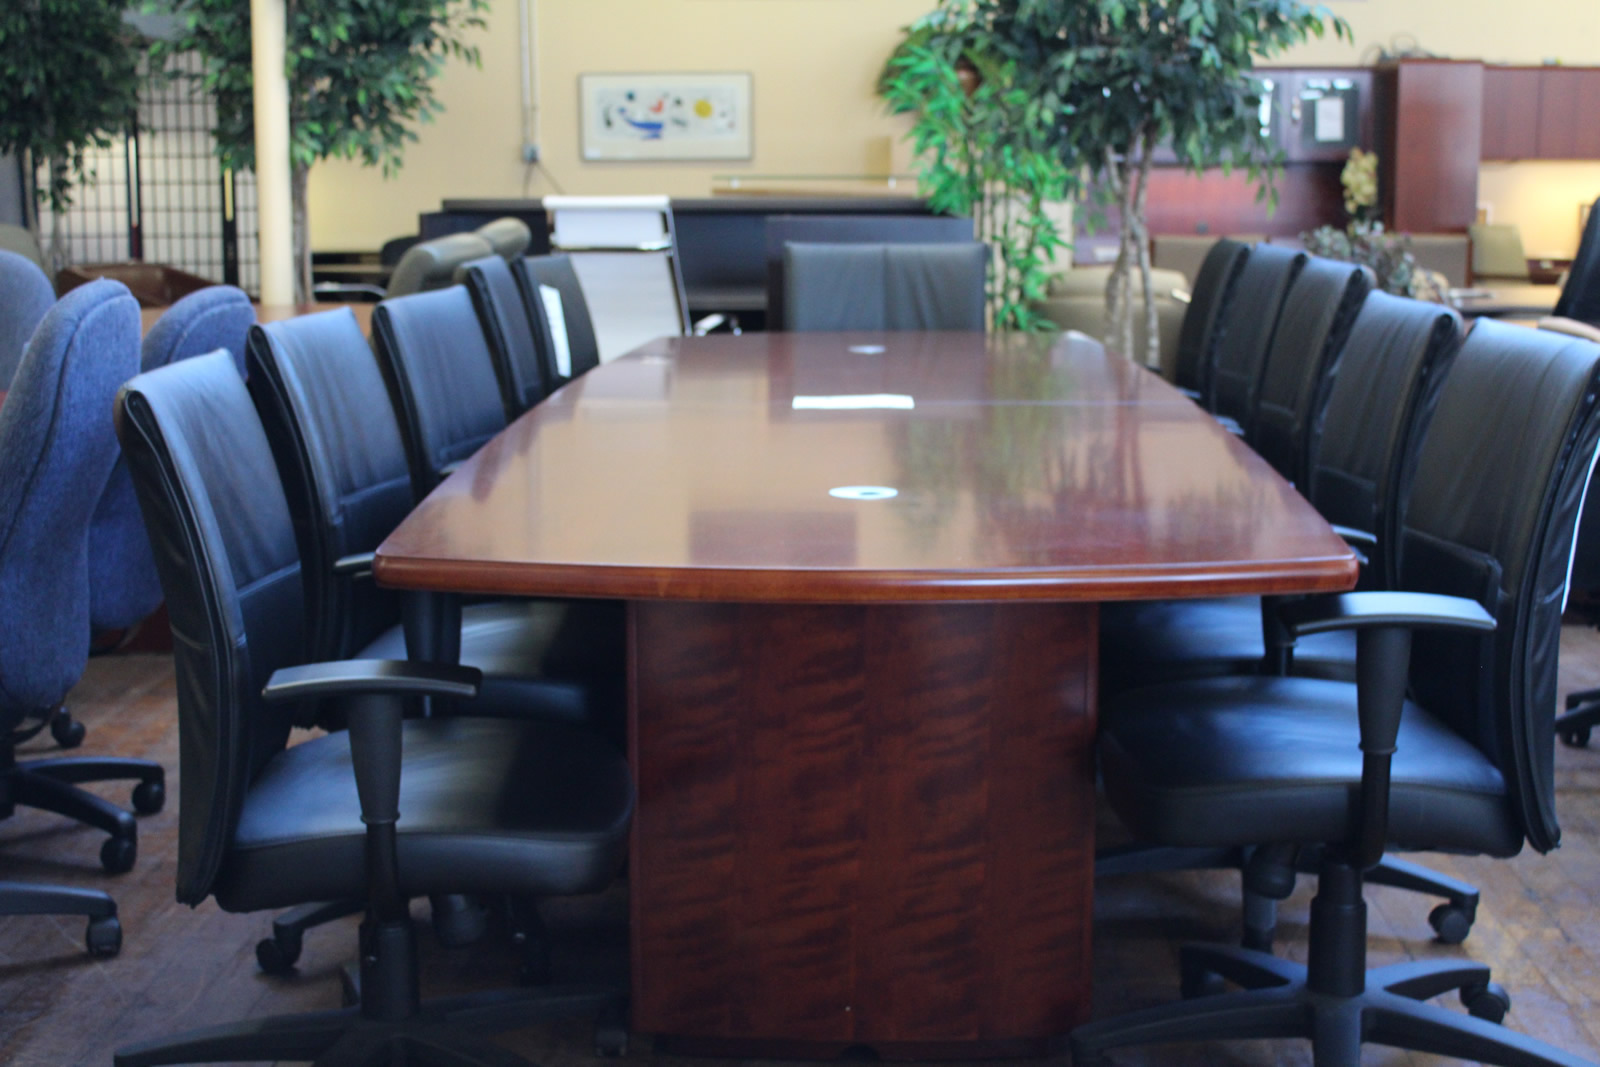 peartreeofficefurniture_peartreeofficefurniture_img_0068.jpg